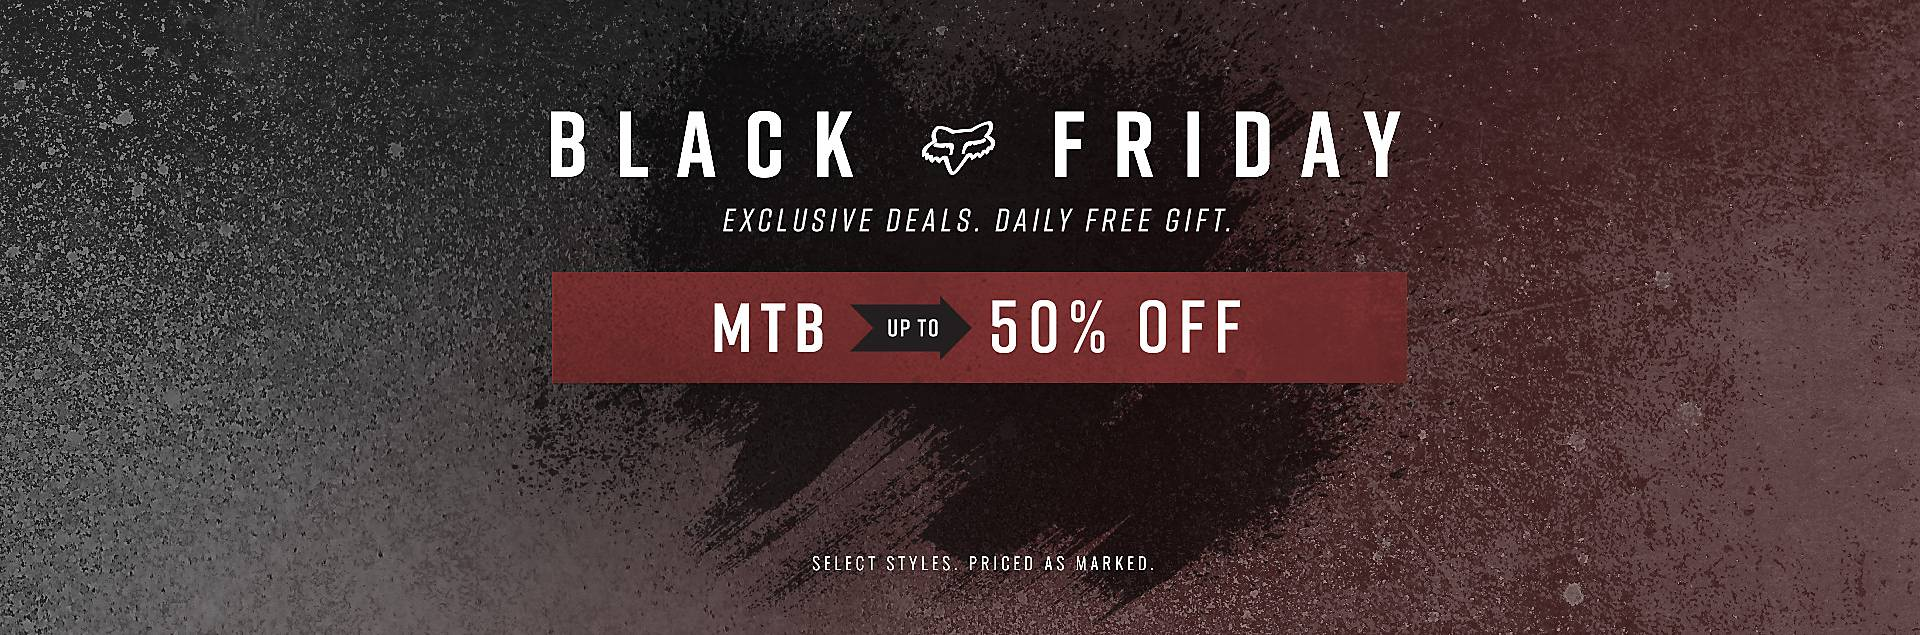 Up to 50% Off MTB